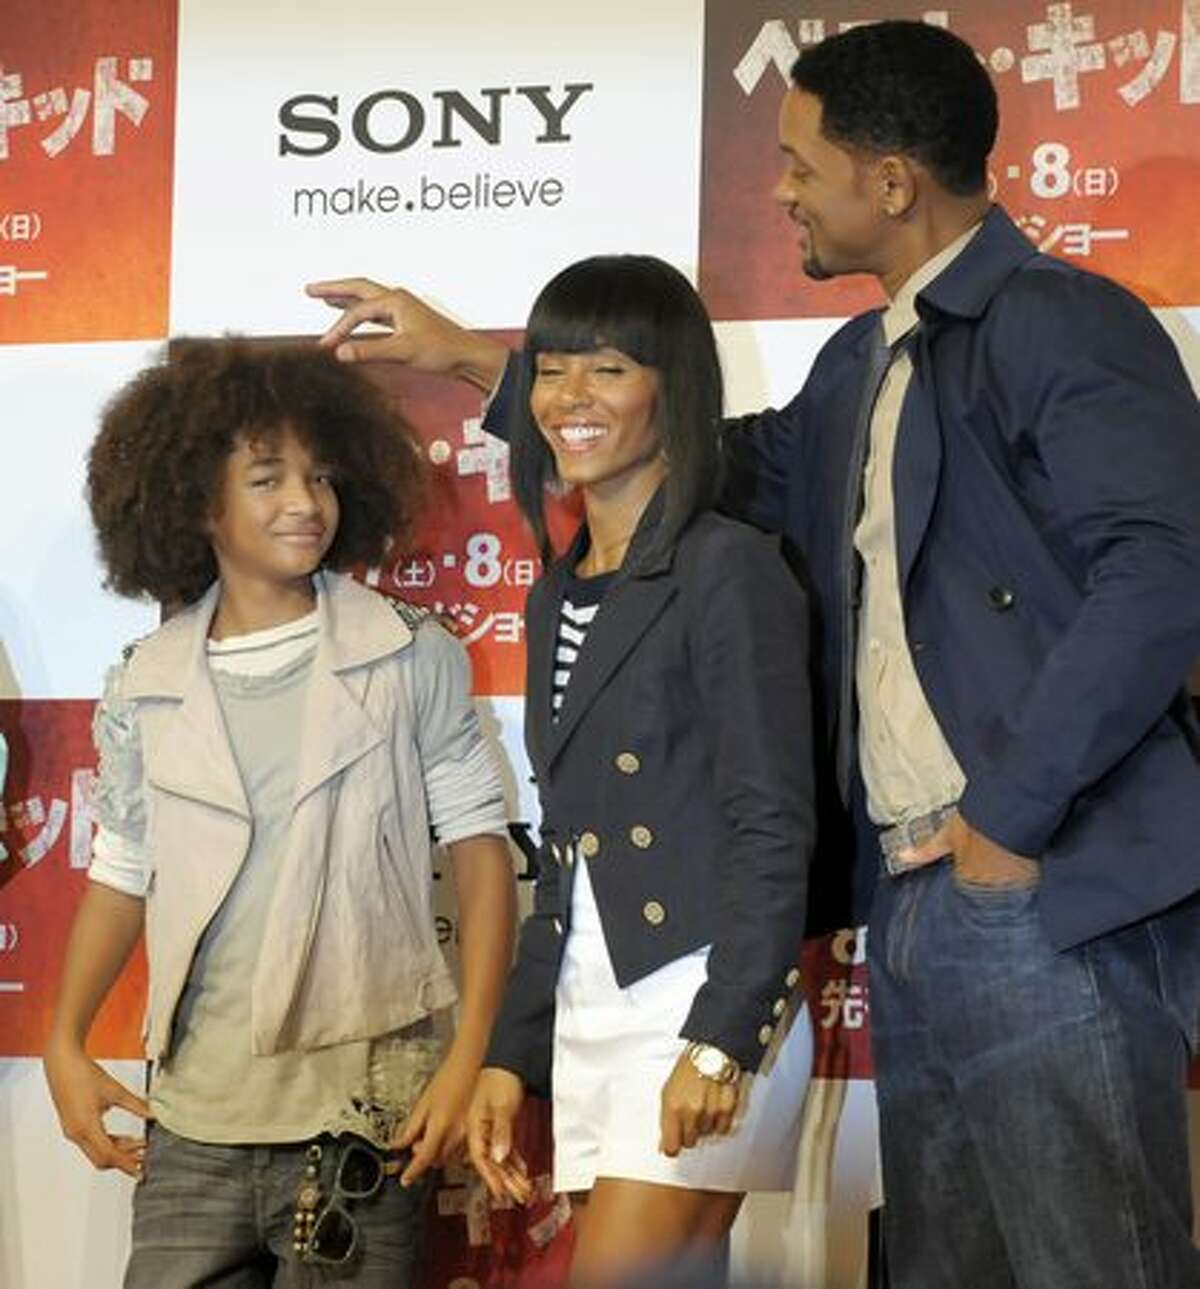 """Actor Will Smith (R) touches the hair of his son Jaden Smith while his wife Jada Pinkett Smith (C) smiles during a photo session and press conference for their latest movie """"Karate Kid"""" in Tokyo. Karate Kid, known as """"The Kung Fu Dream"""" in China and """"Best Kid"""" in Japan and South Korea, will open in cinemas across Japan on August 14."""